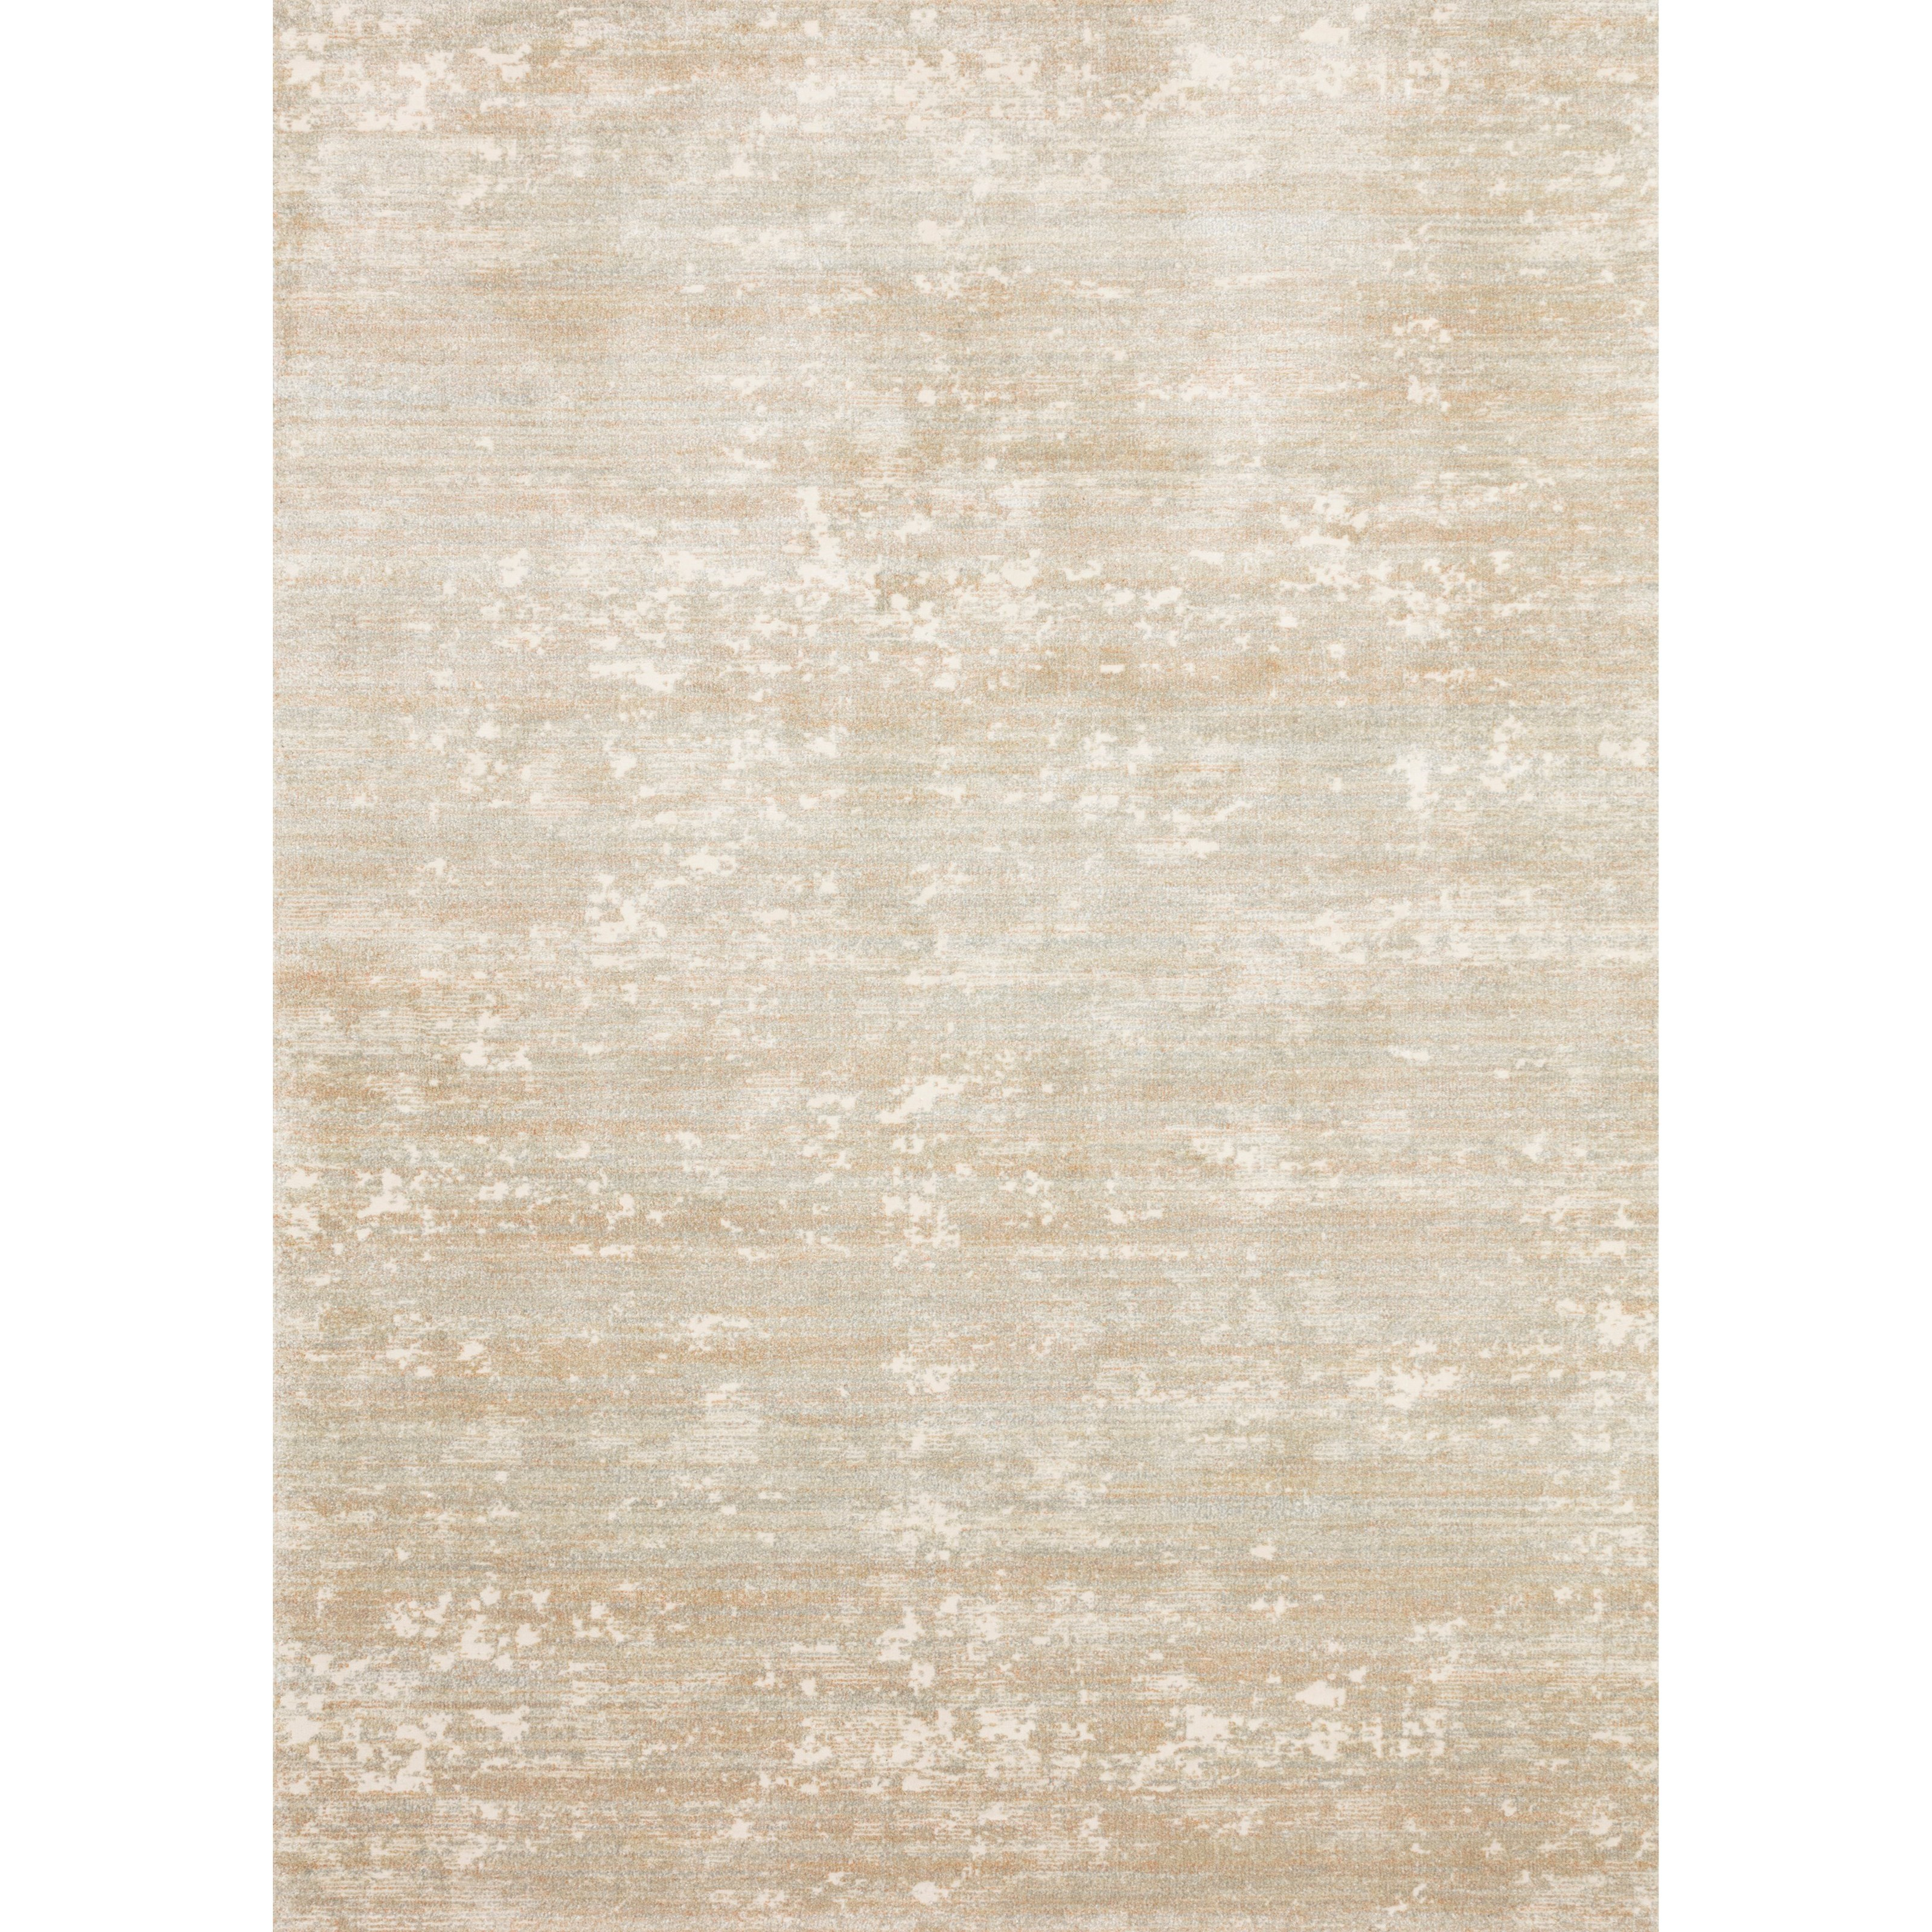 """Augustus 11'6"""" x 15' Sunset / Mist Rug by Loloi Rugs at Virginia Furniture Market"""